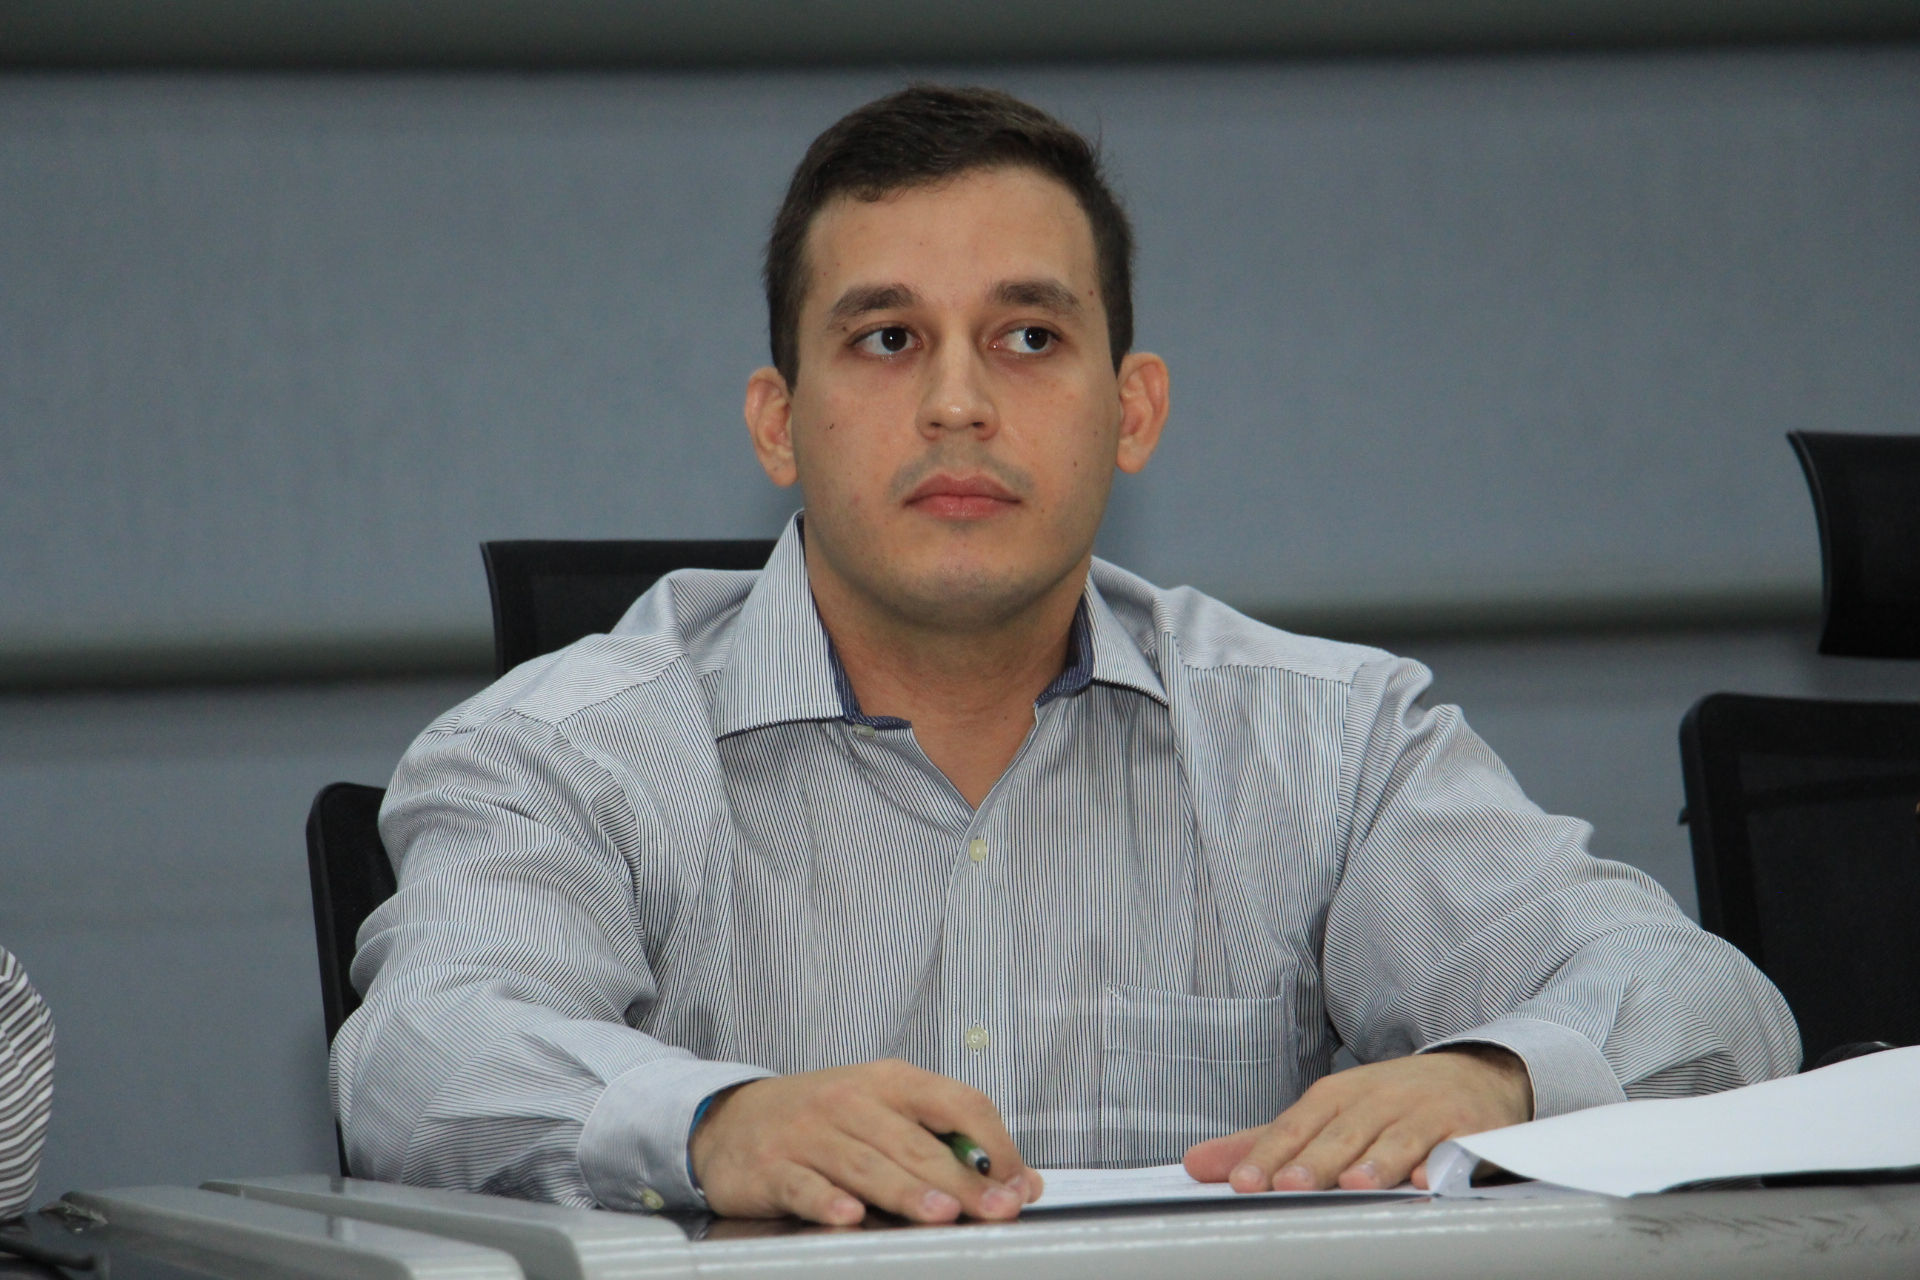 img_4392_ver_willian_maksoud_audiencia_educao_fsica_fto_izaias_medeiros